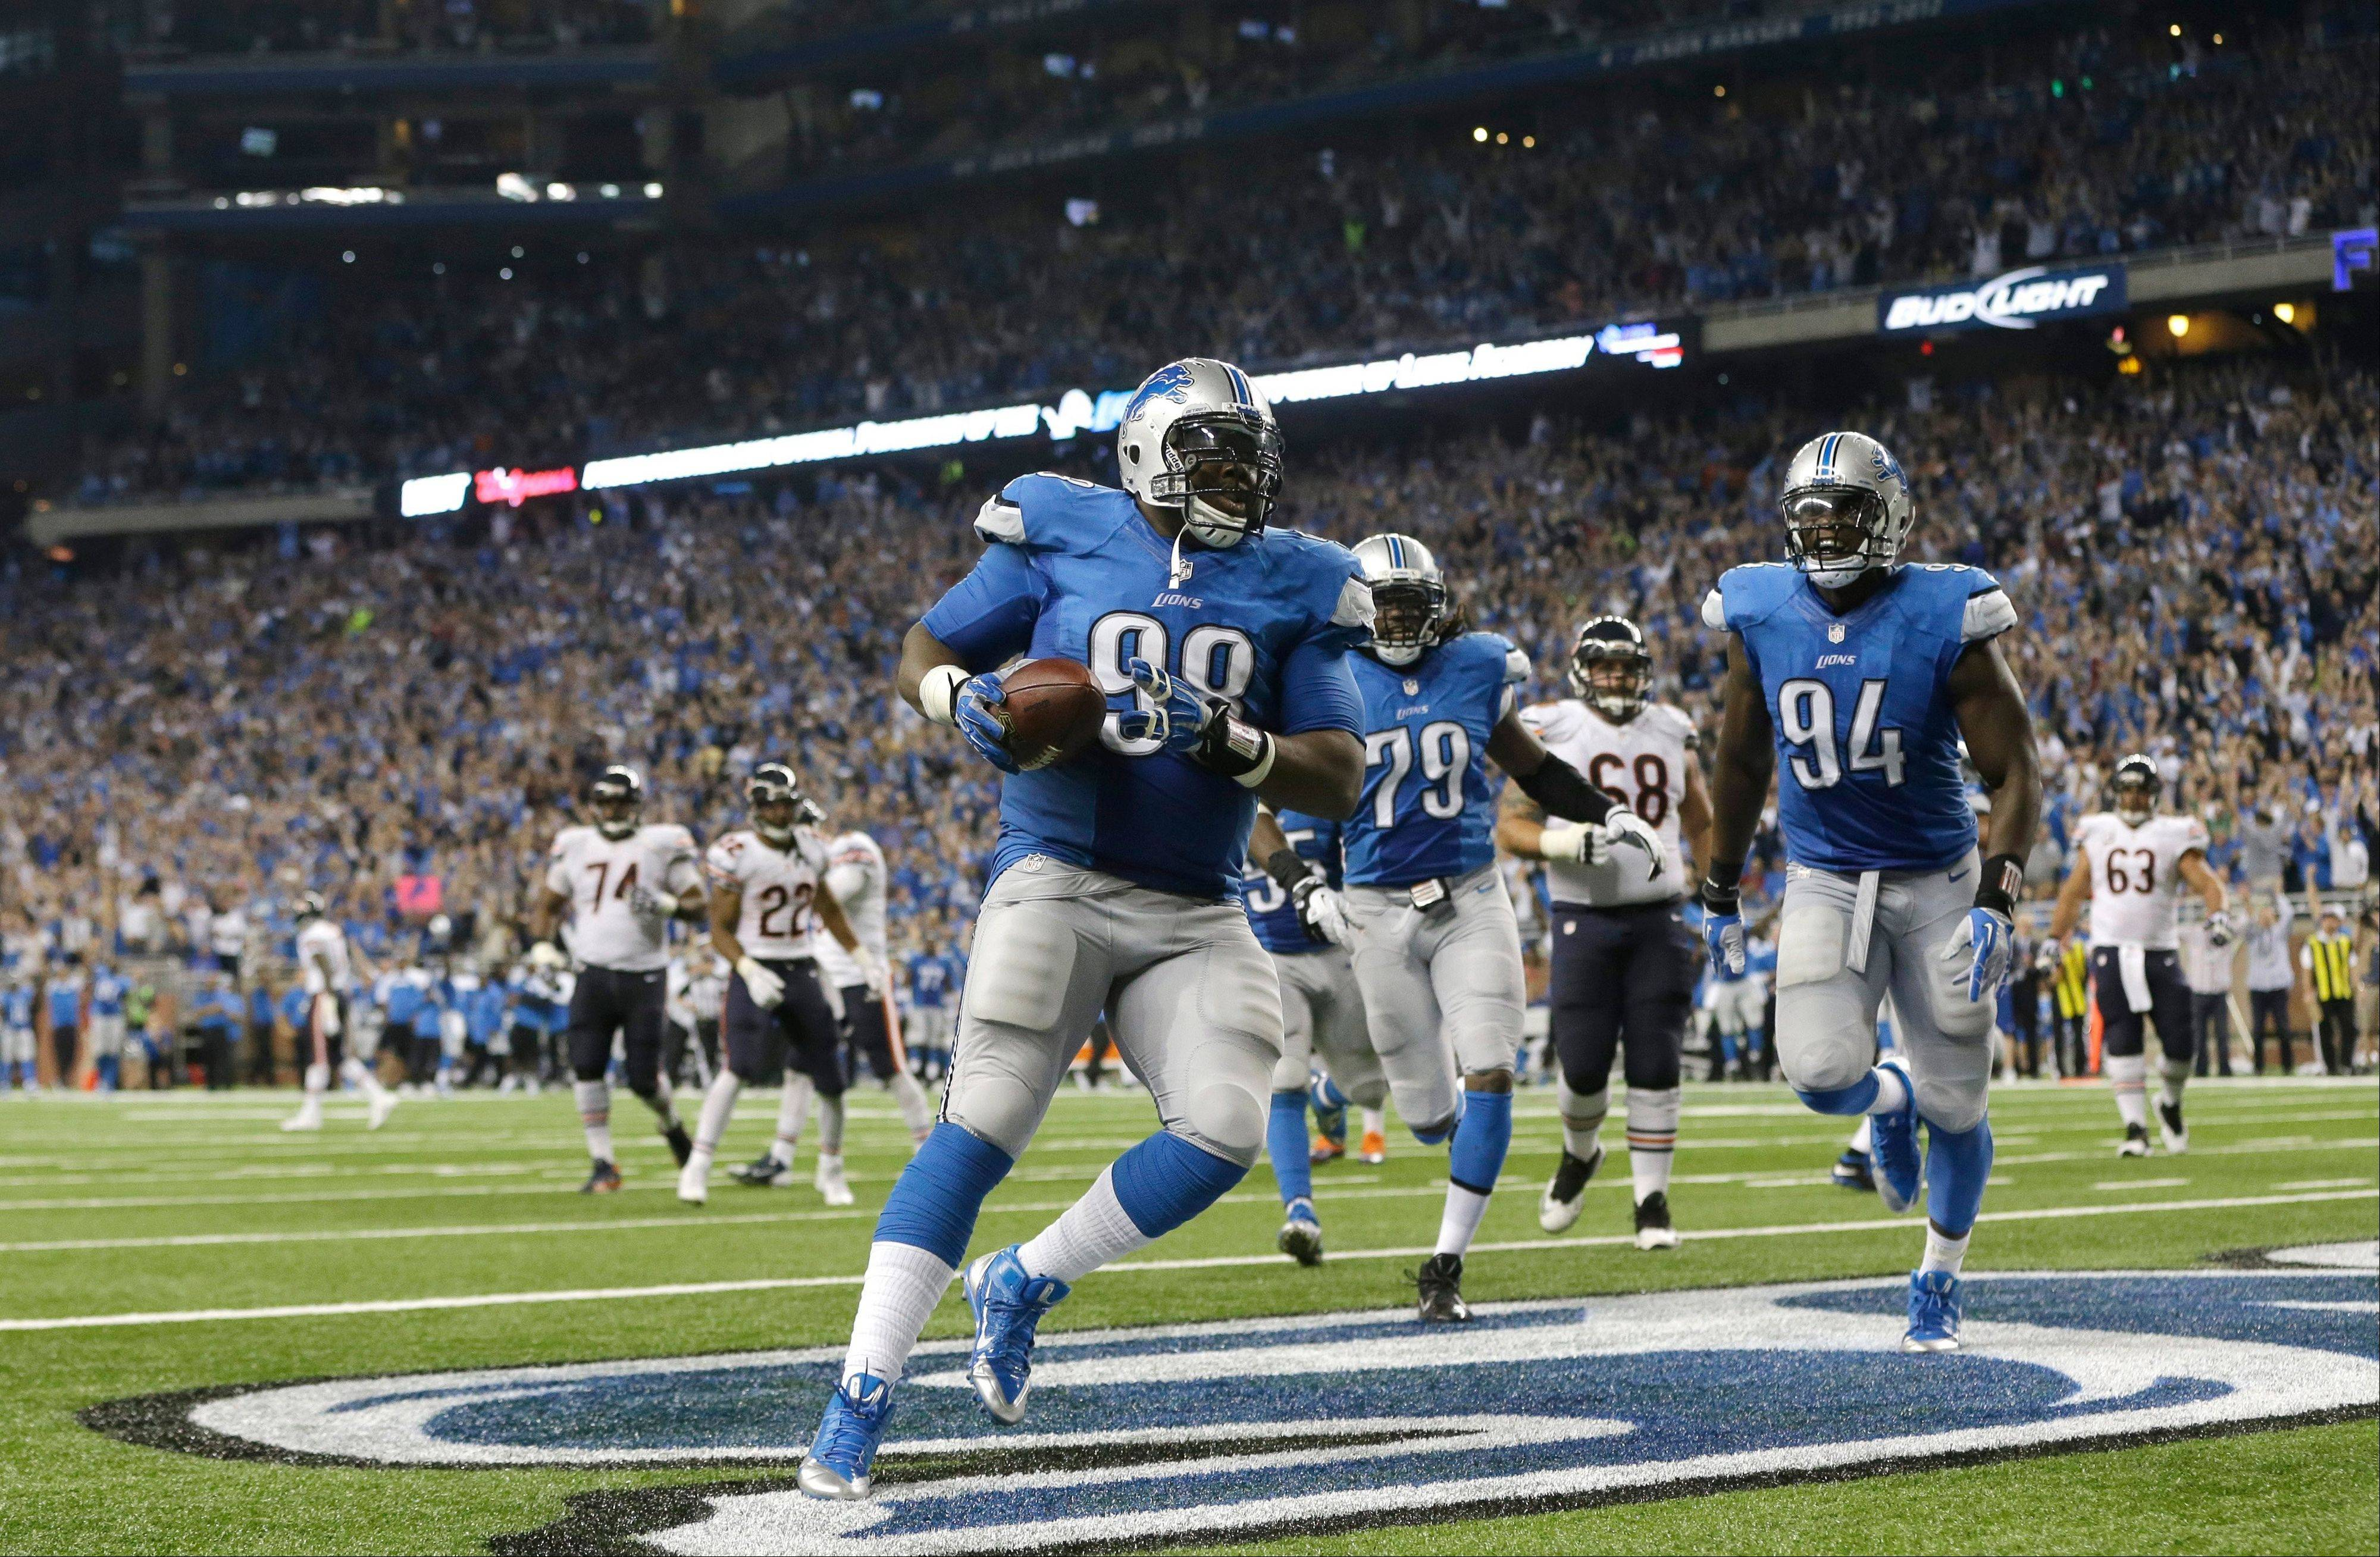 Lions defensive tackle Nick Fairley runs into the end zone after recovering a fumble by Bears quarterback Jay Cutler in the third quarter Sunday at Detroit.